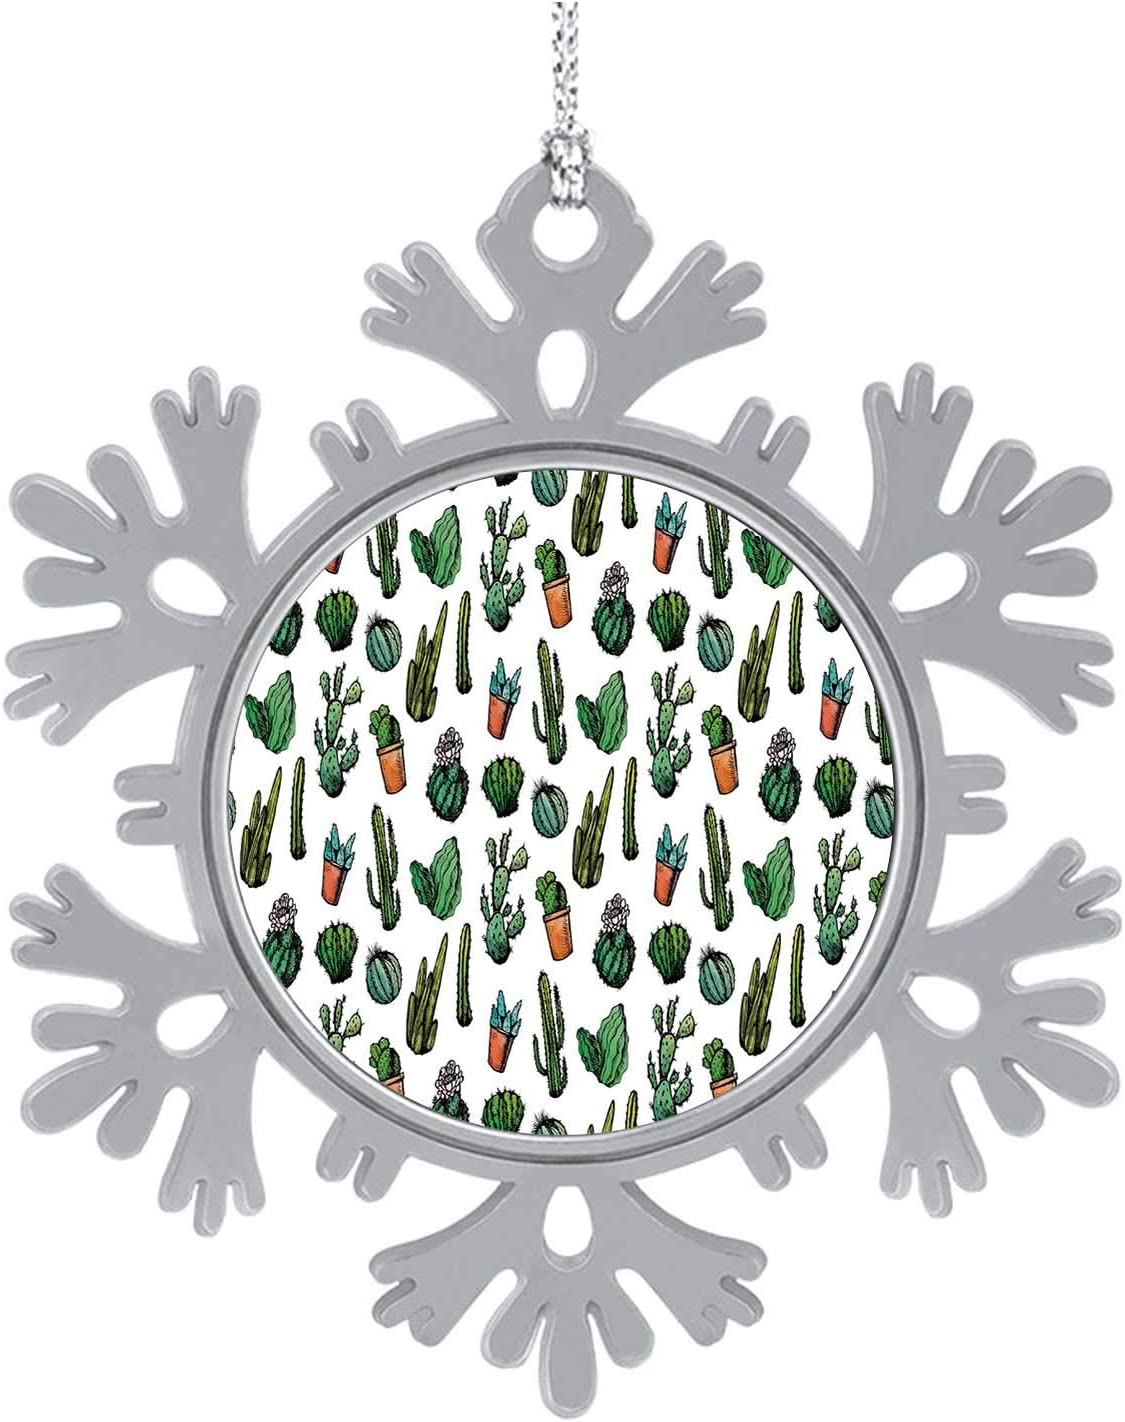 C COABALLA Cactus Dr,Cute 2020 Home Décor Hanging Snowflake Decorations Ornament Sketchy Spiked Mexican Garden Foliage Boho Hand Drawn Line Art Cacti in Pots Drative 8PCS